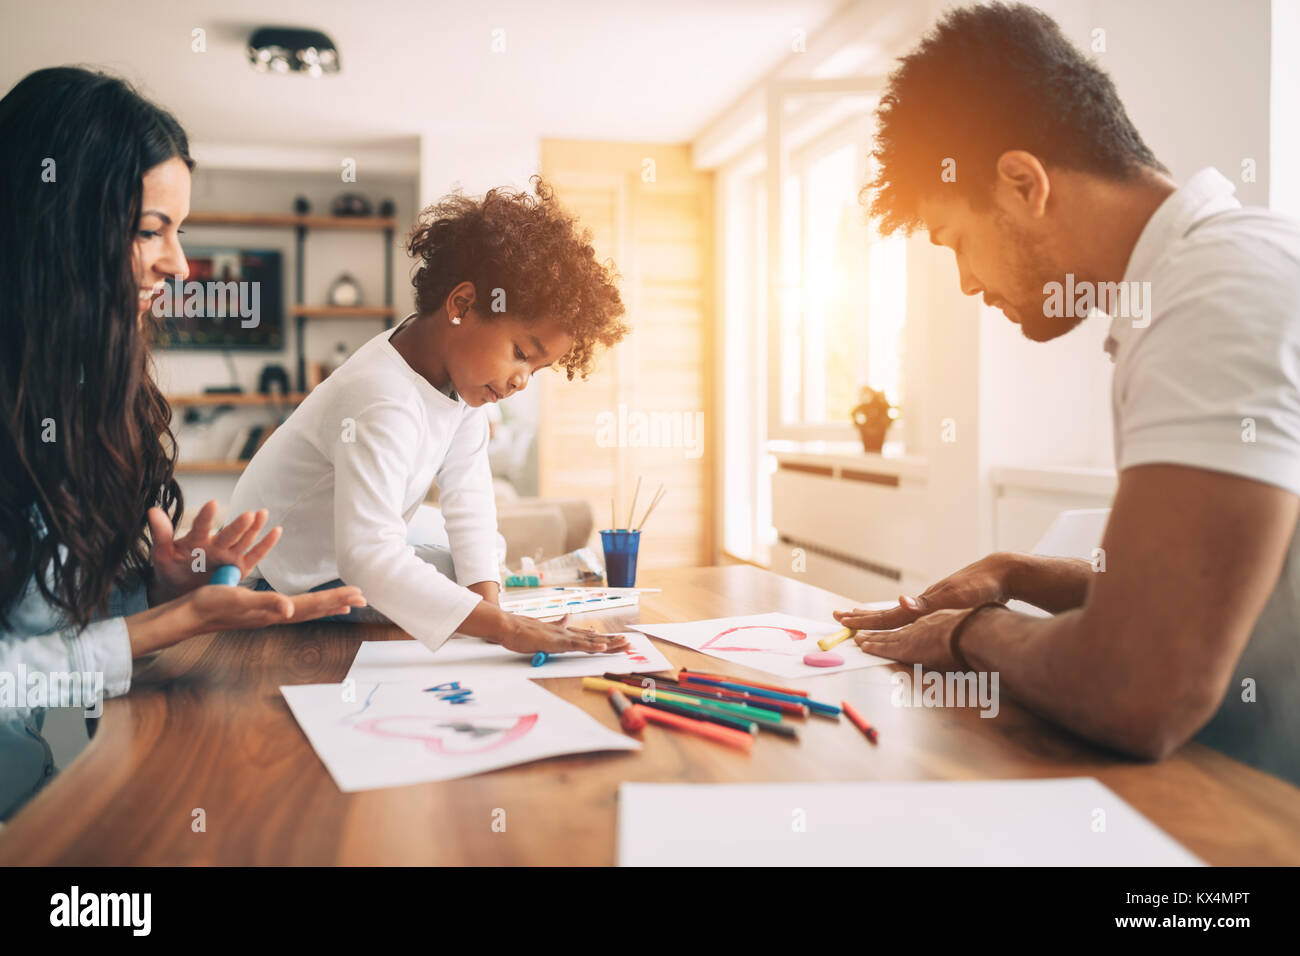 Happy young family relax and have fun at home - Stock Image